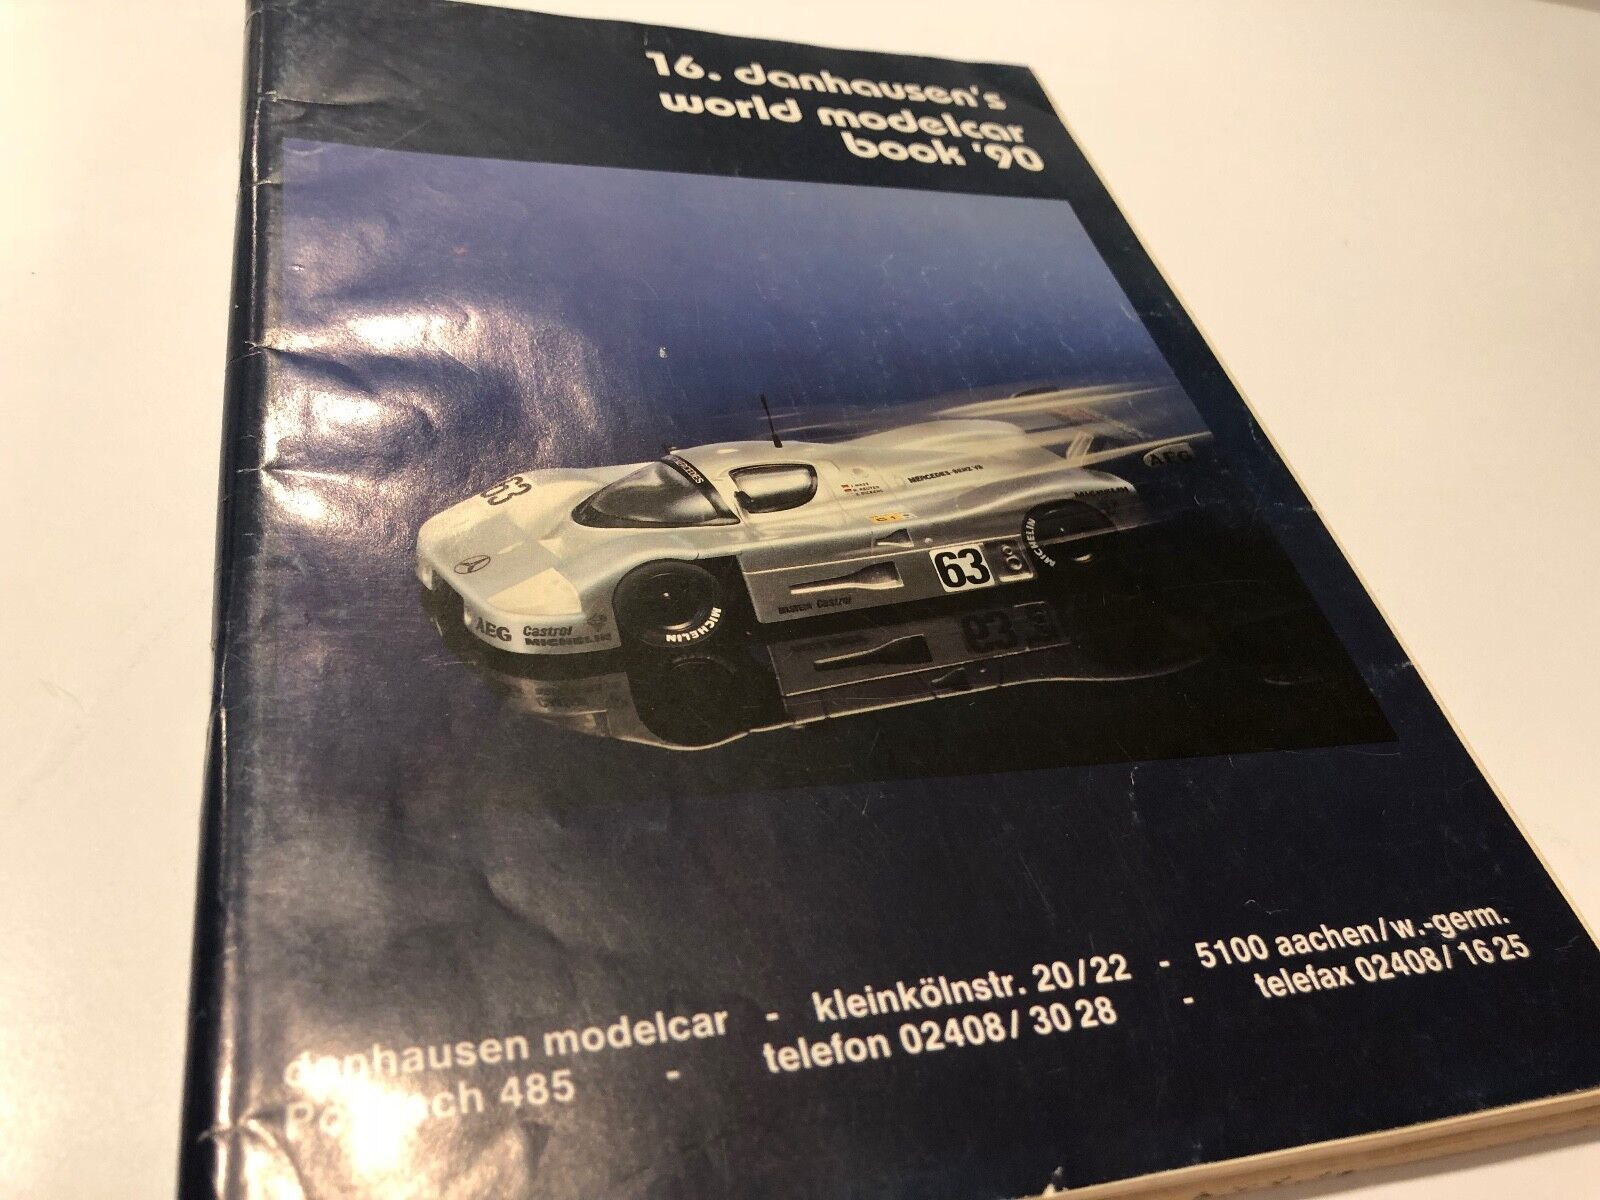 16. Danhausen's World Modelcar Book '90, model catalog complete